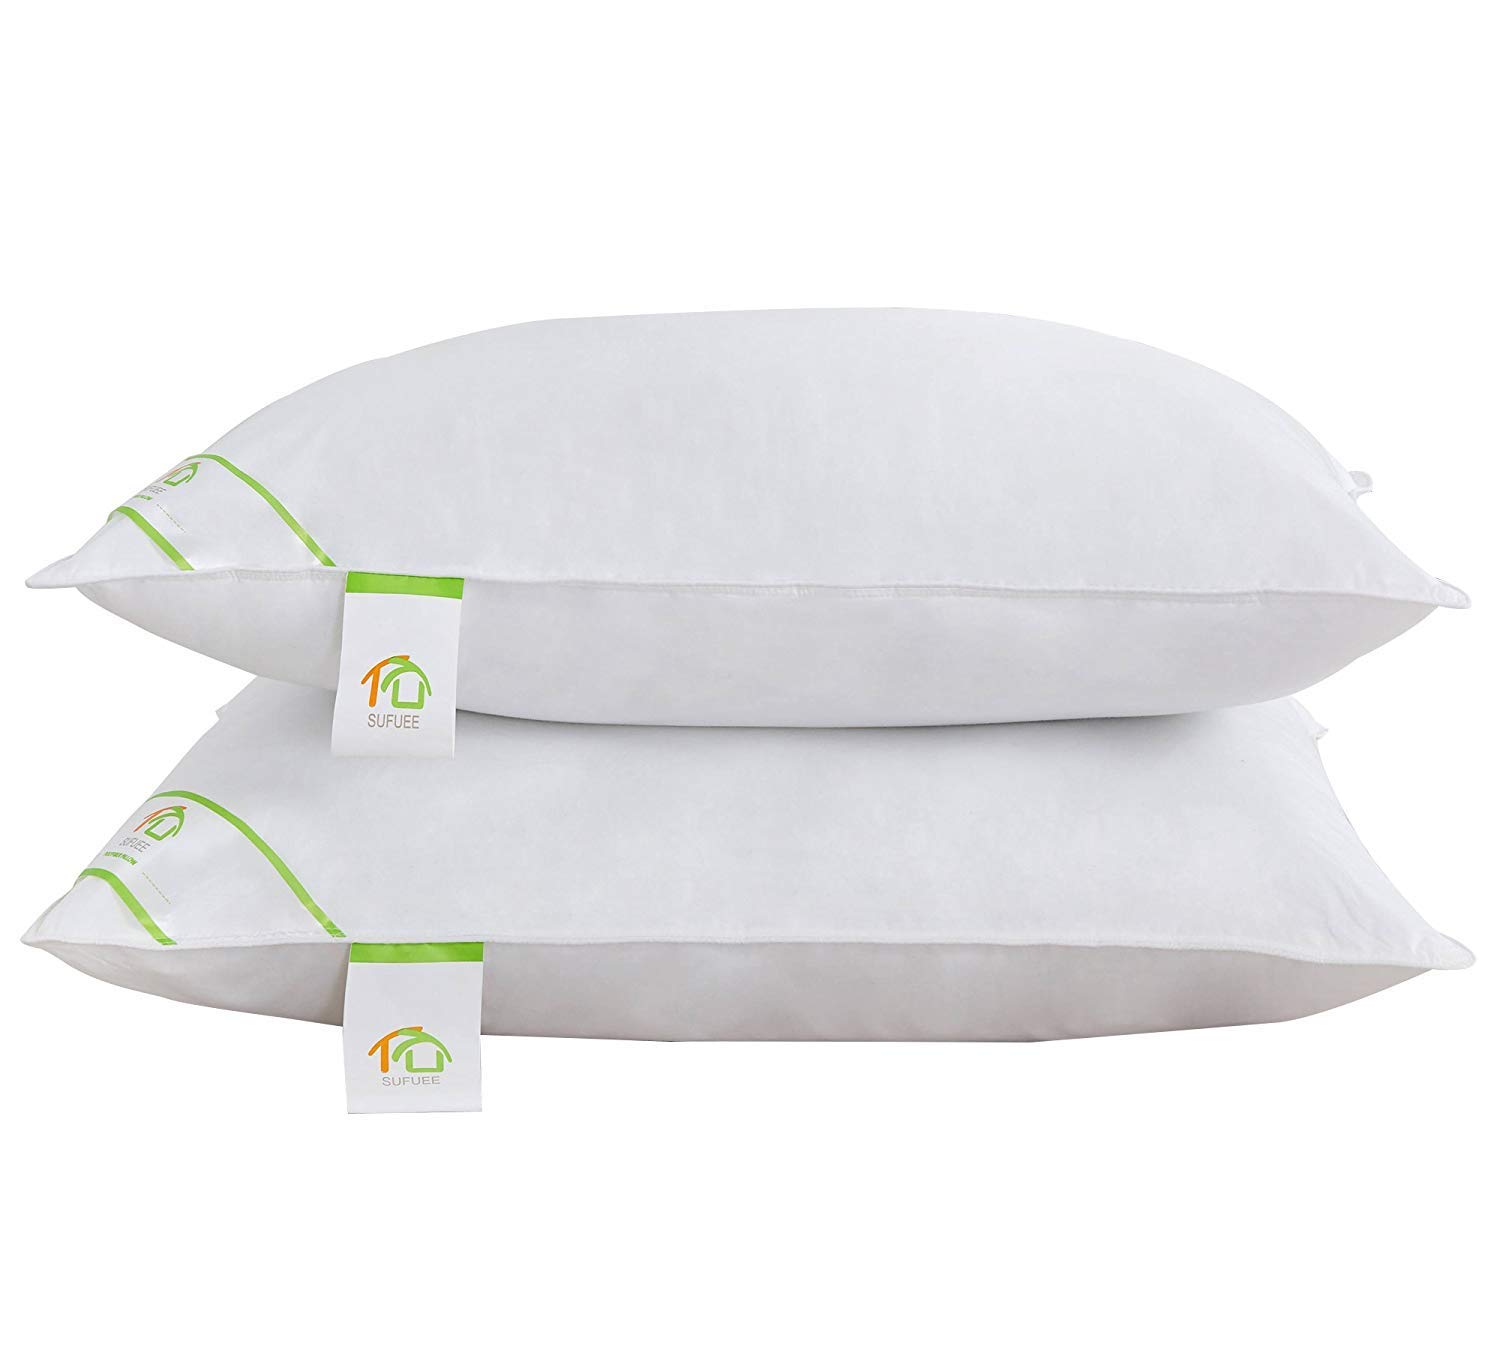 Goose Feather and Down Pillows Pair, Luxury Pillows with 100% Cotton Cover, Medium and Soft Firmness, Hotel Quality(48X74cm) DUO-V HOME